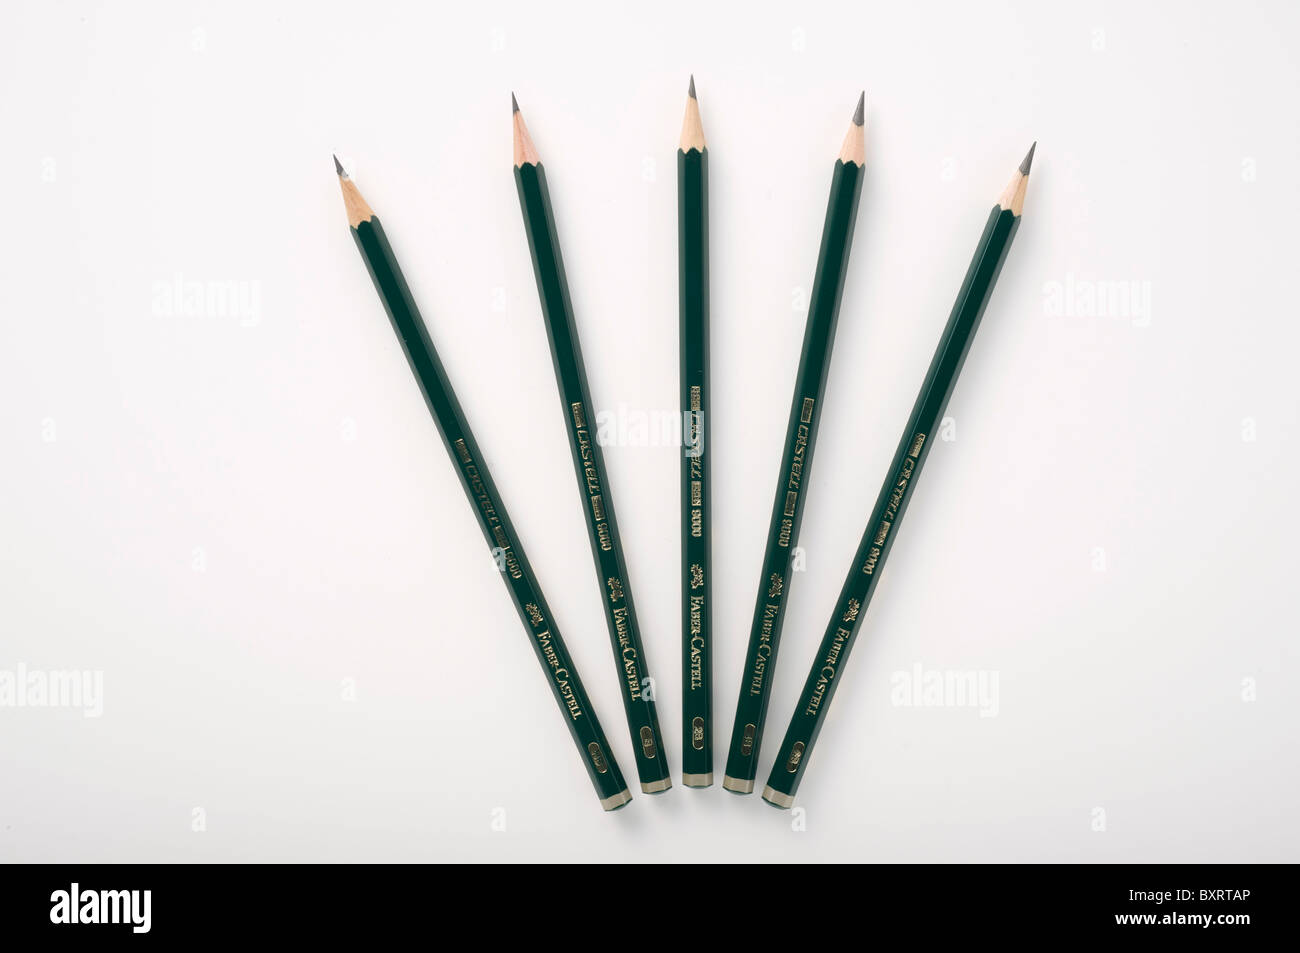 Five sketching pencils on white background - Stock Image